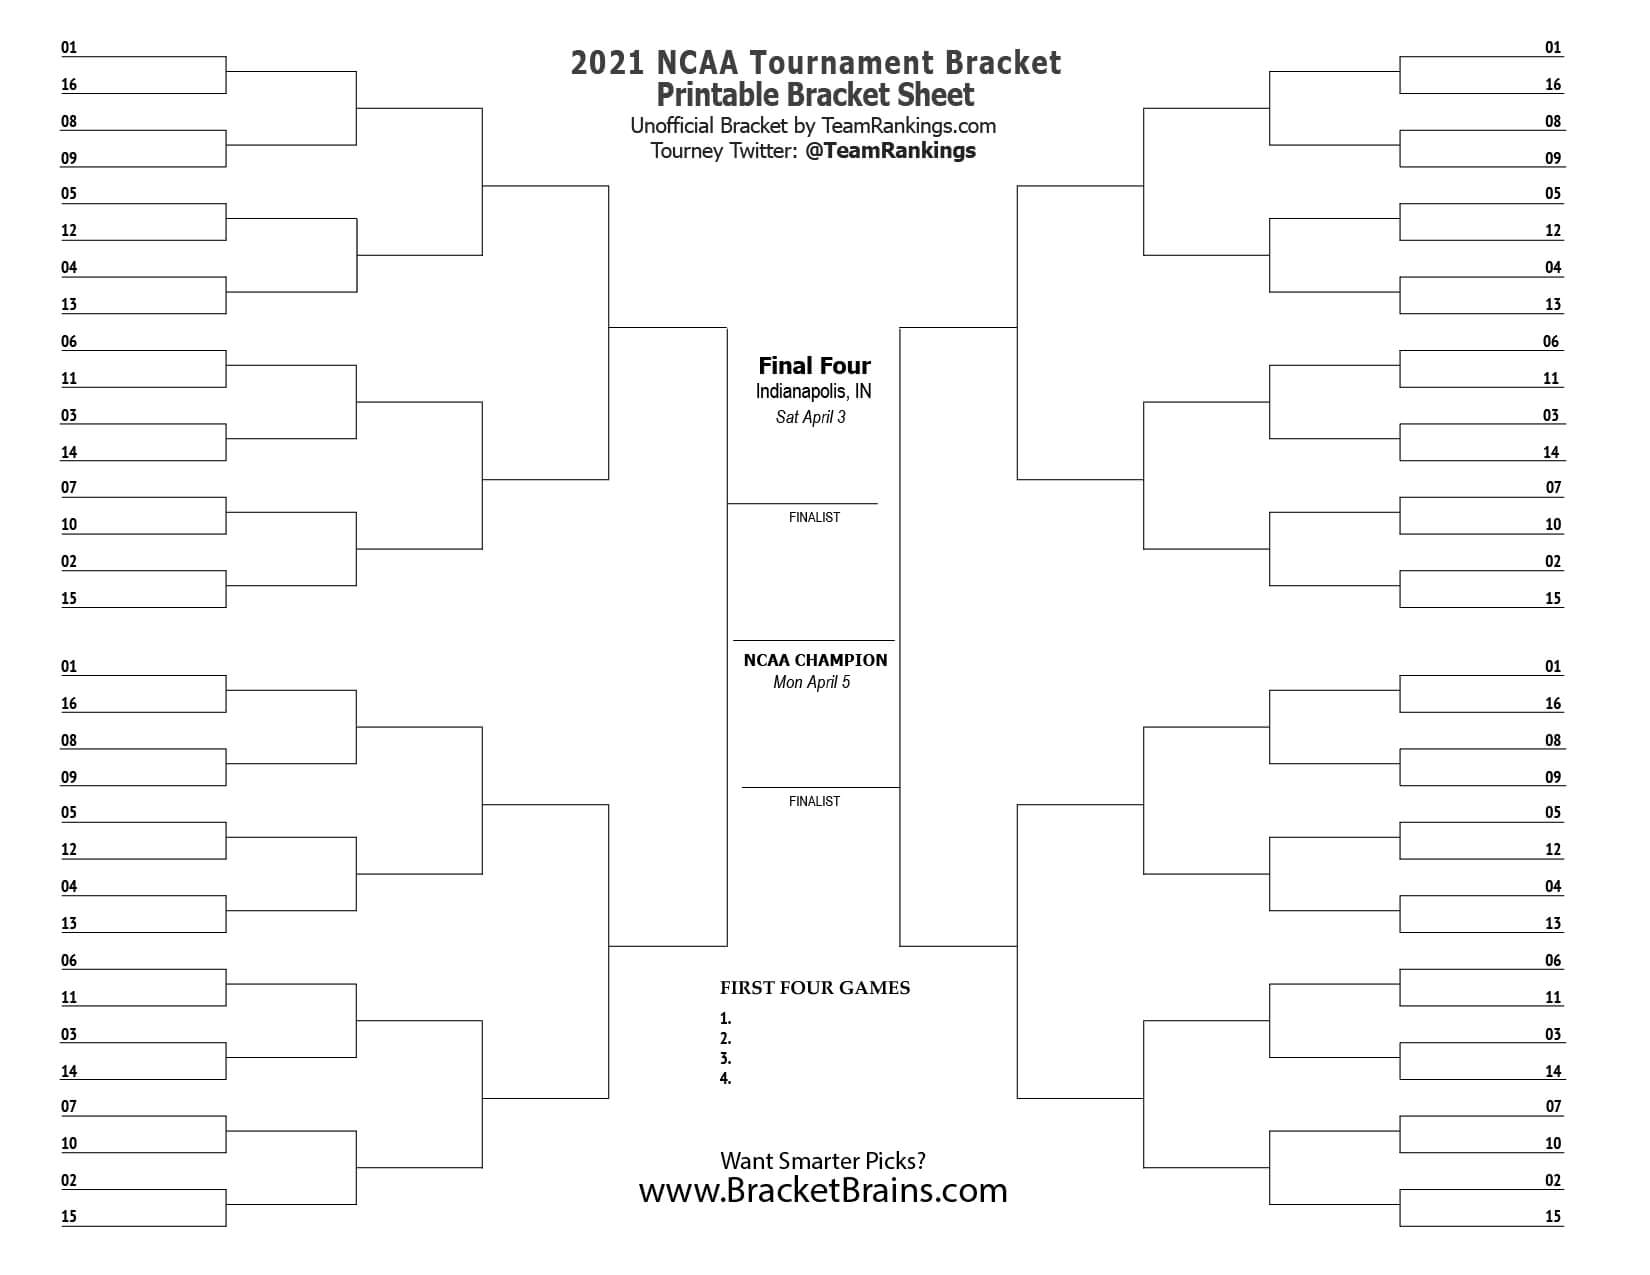 Printable March Madness Brackets 2021 and Betting Bonuses